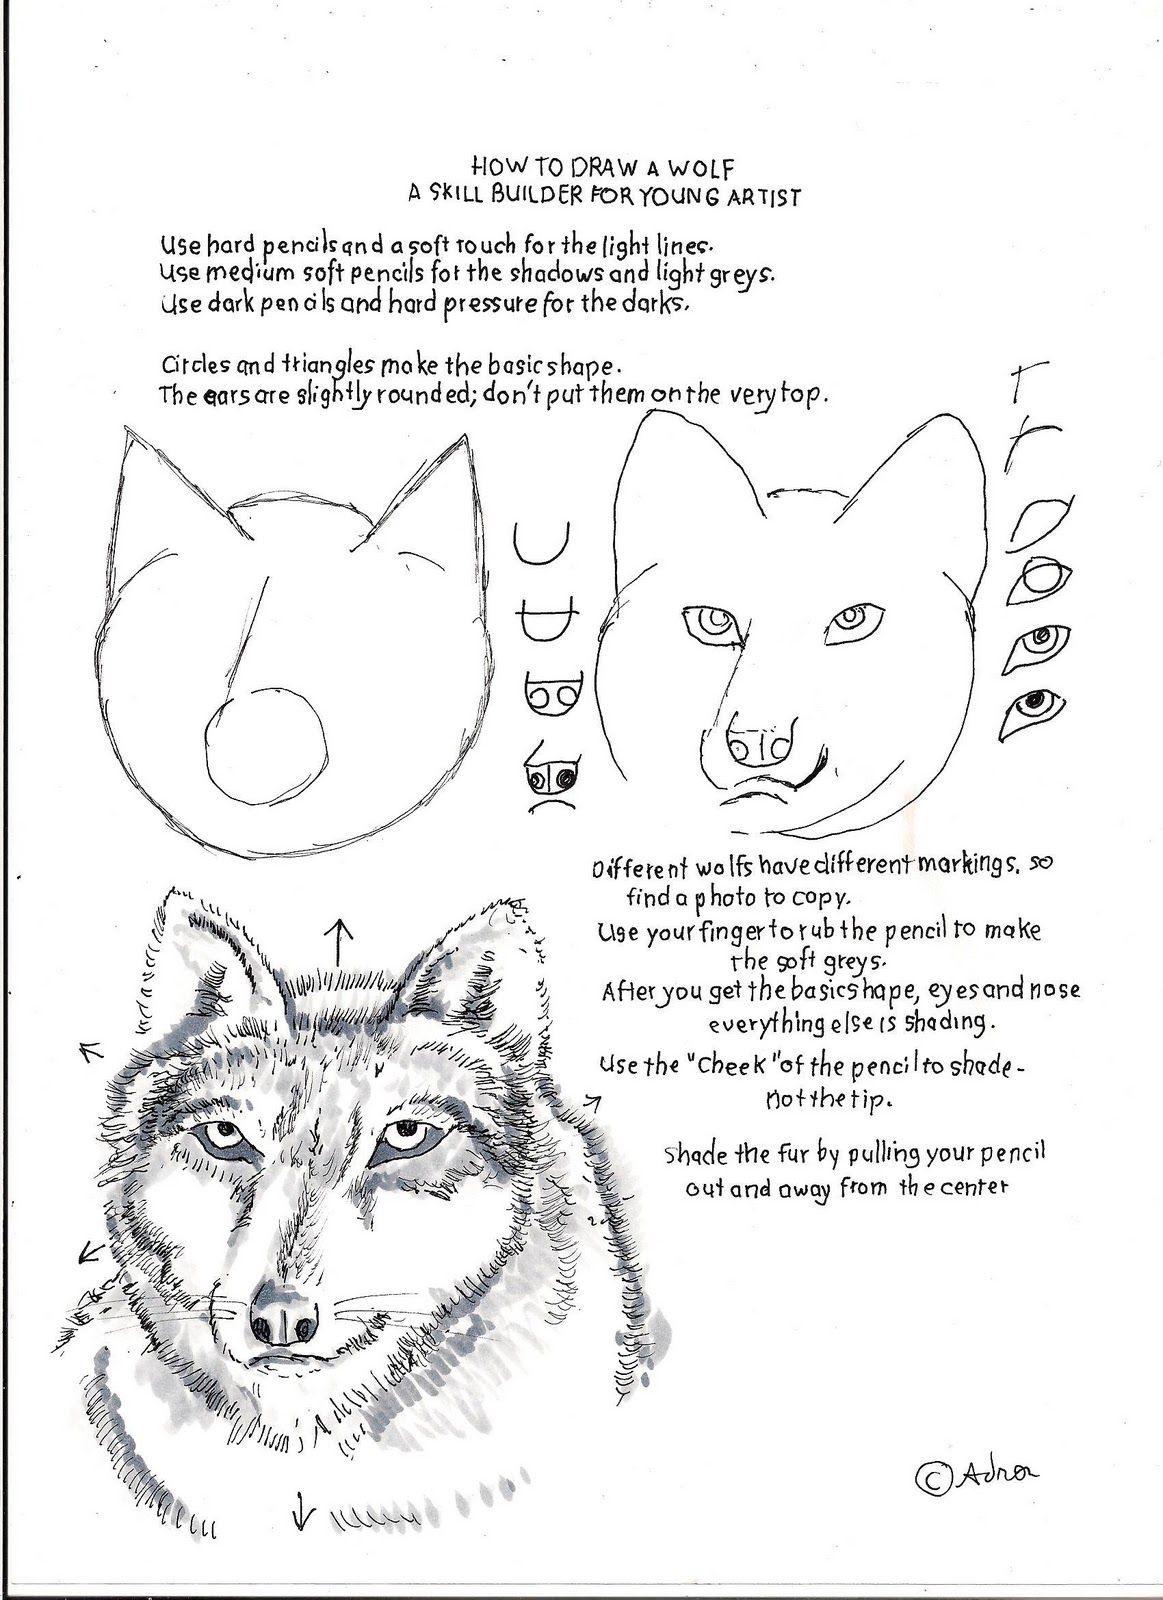 how to draw worksheets for the young artist how to draw a wolf a drawing skill builder for a. Black Bedroom Furniture Sets. Home Design Ideas